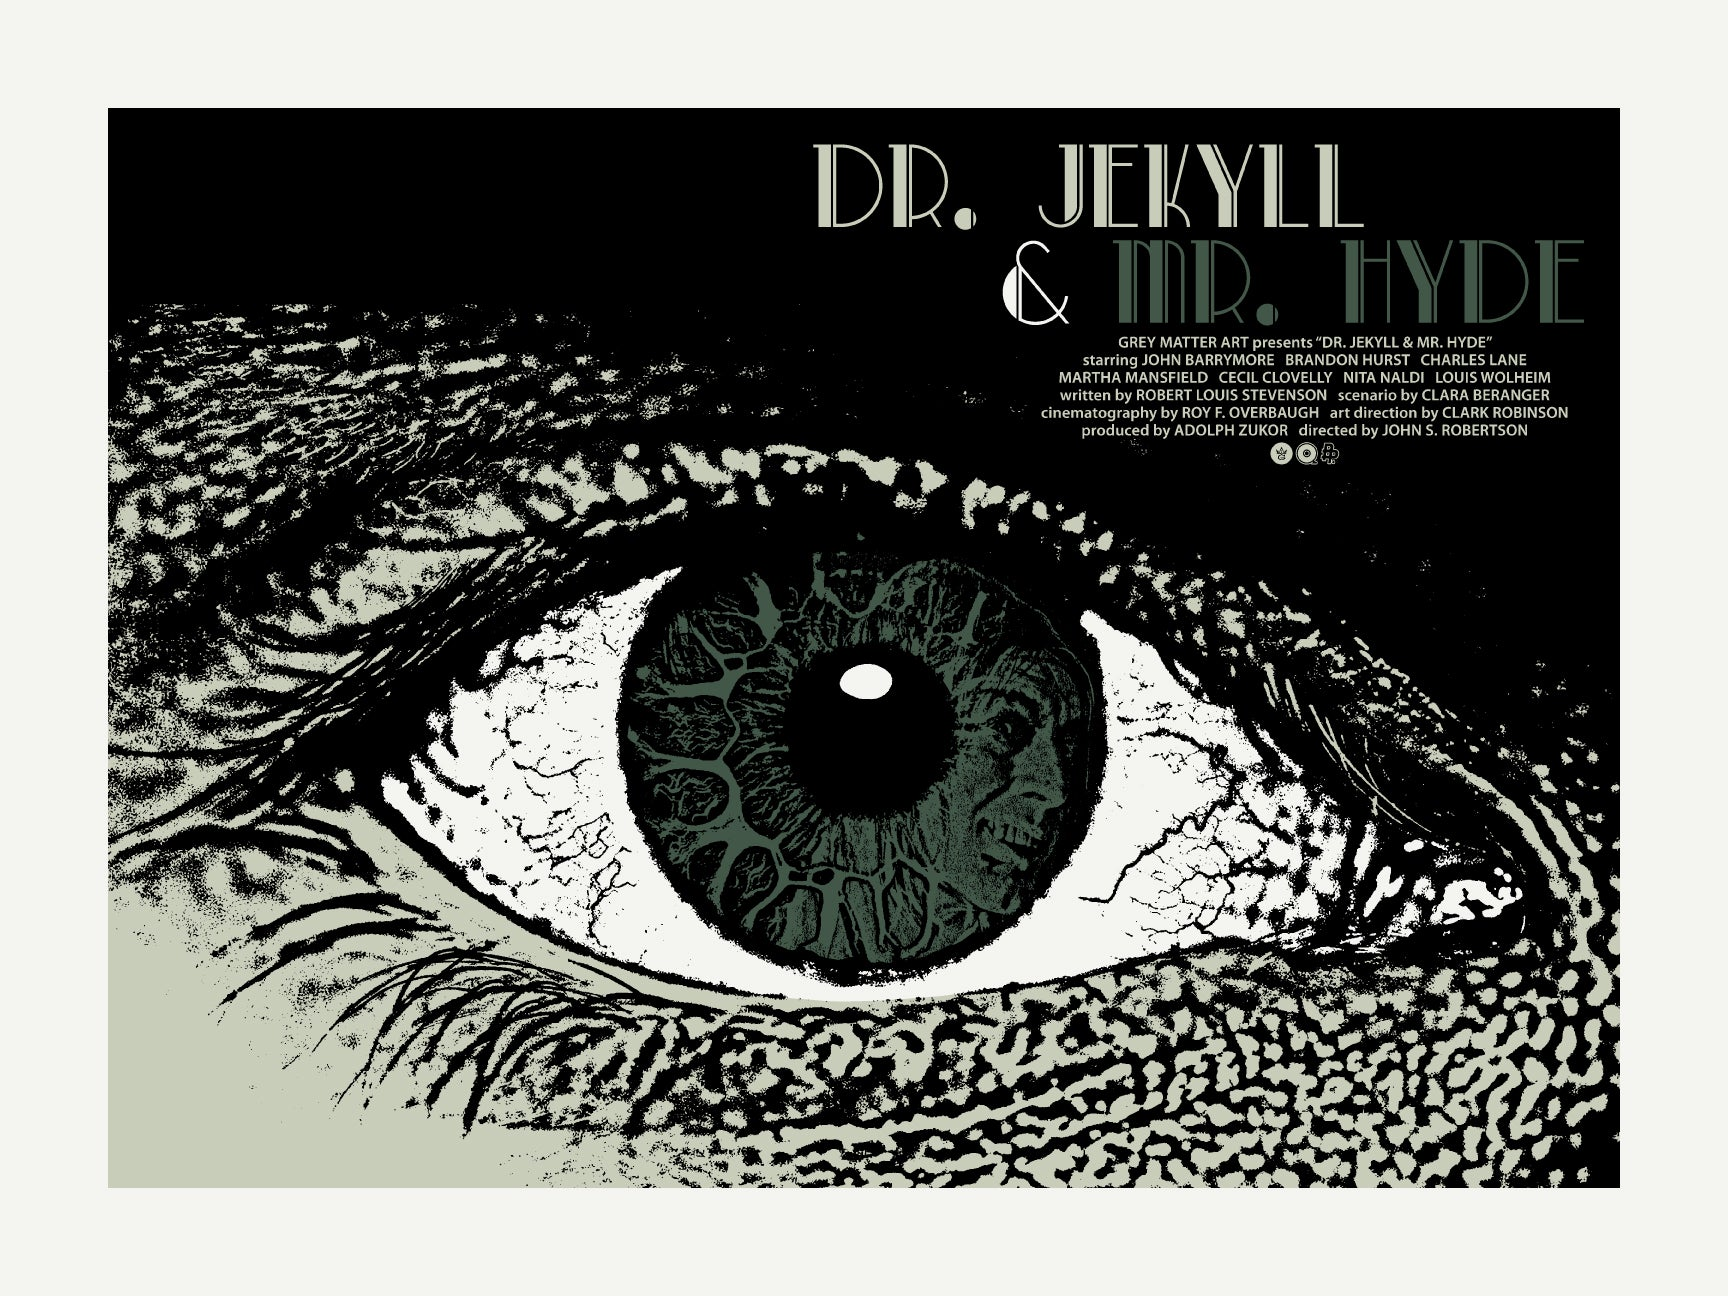 Dr Jekyl And Mr. Hyde